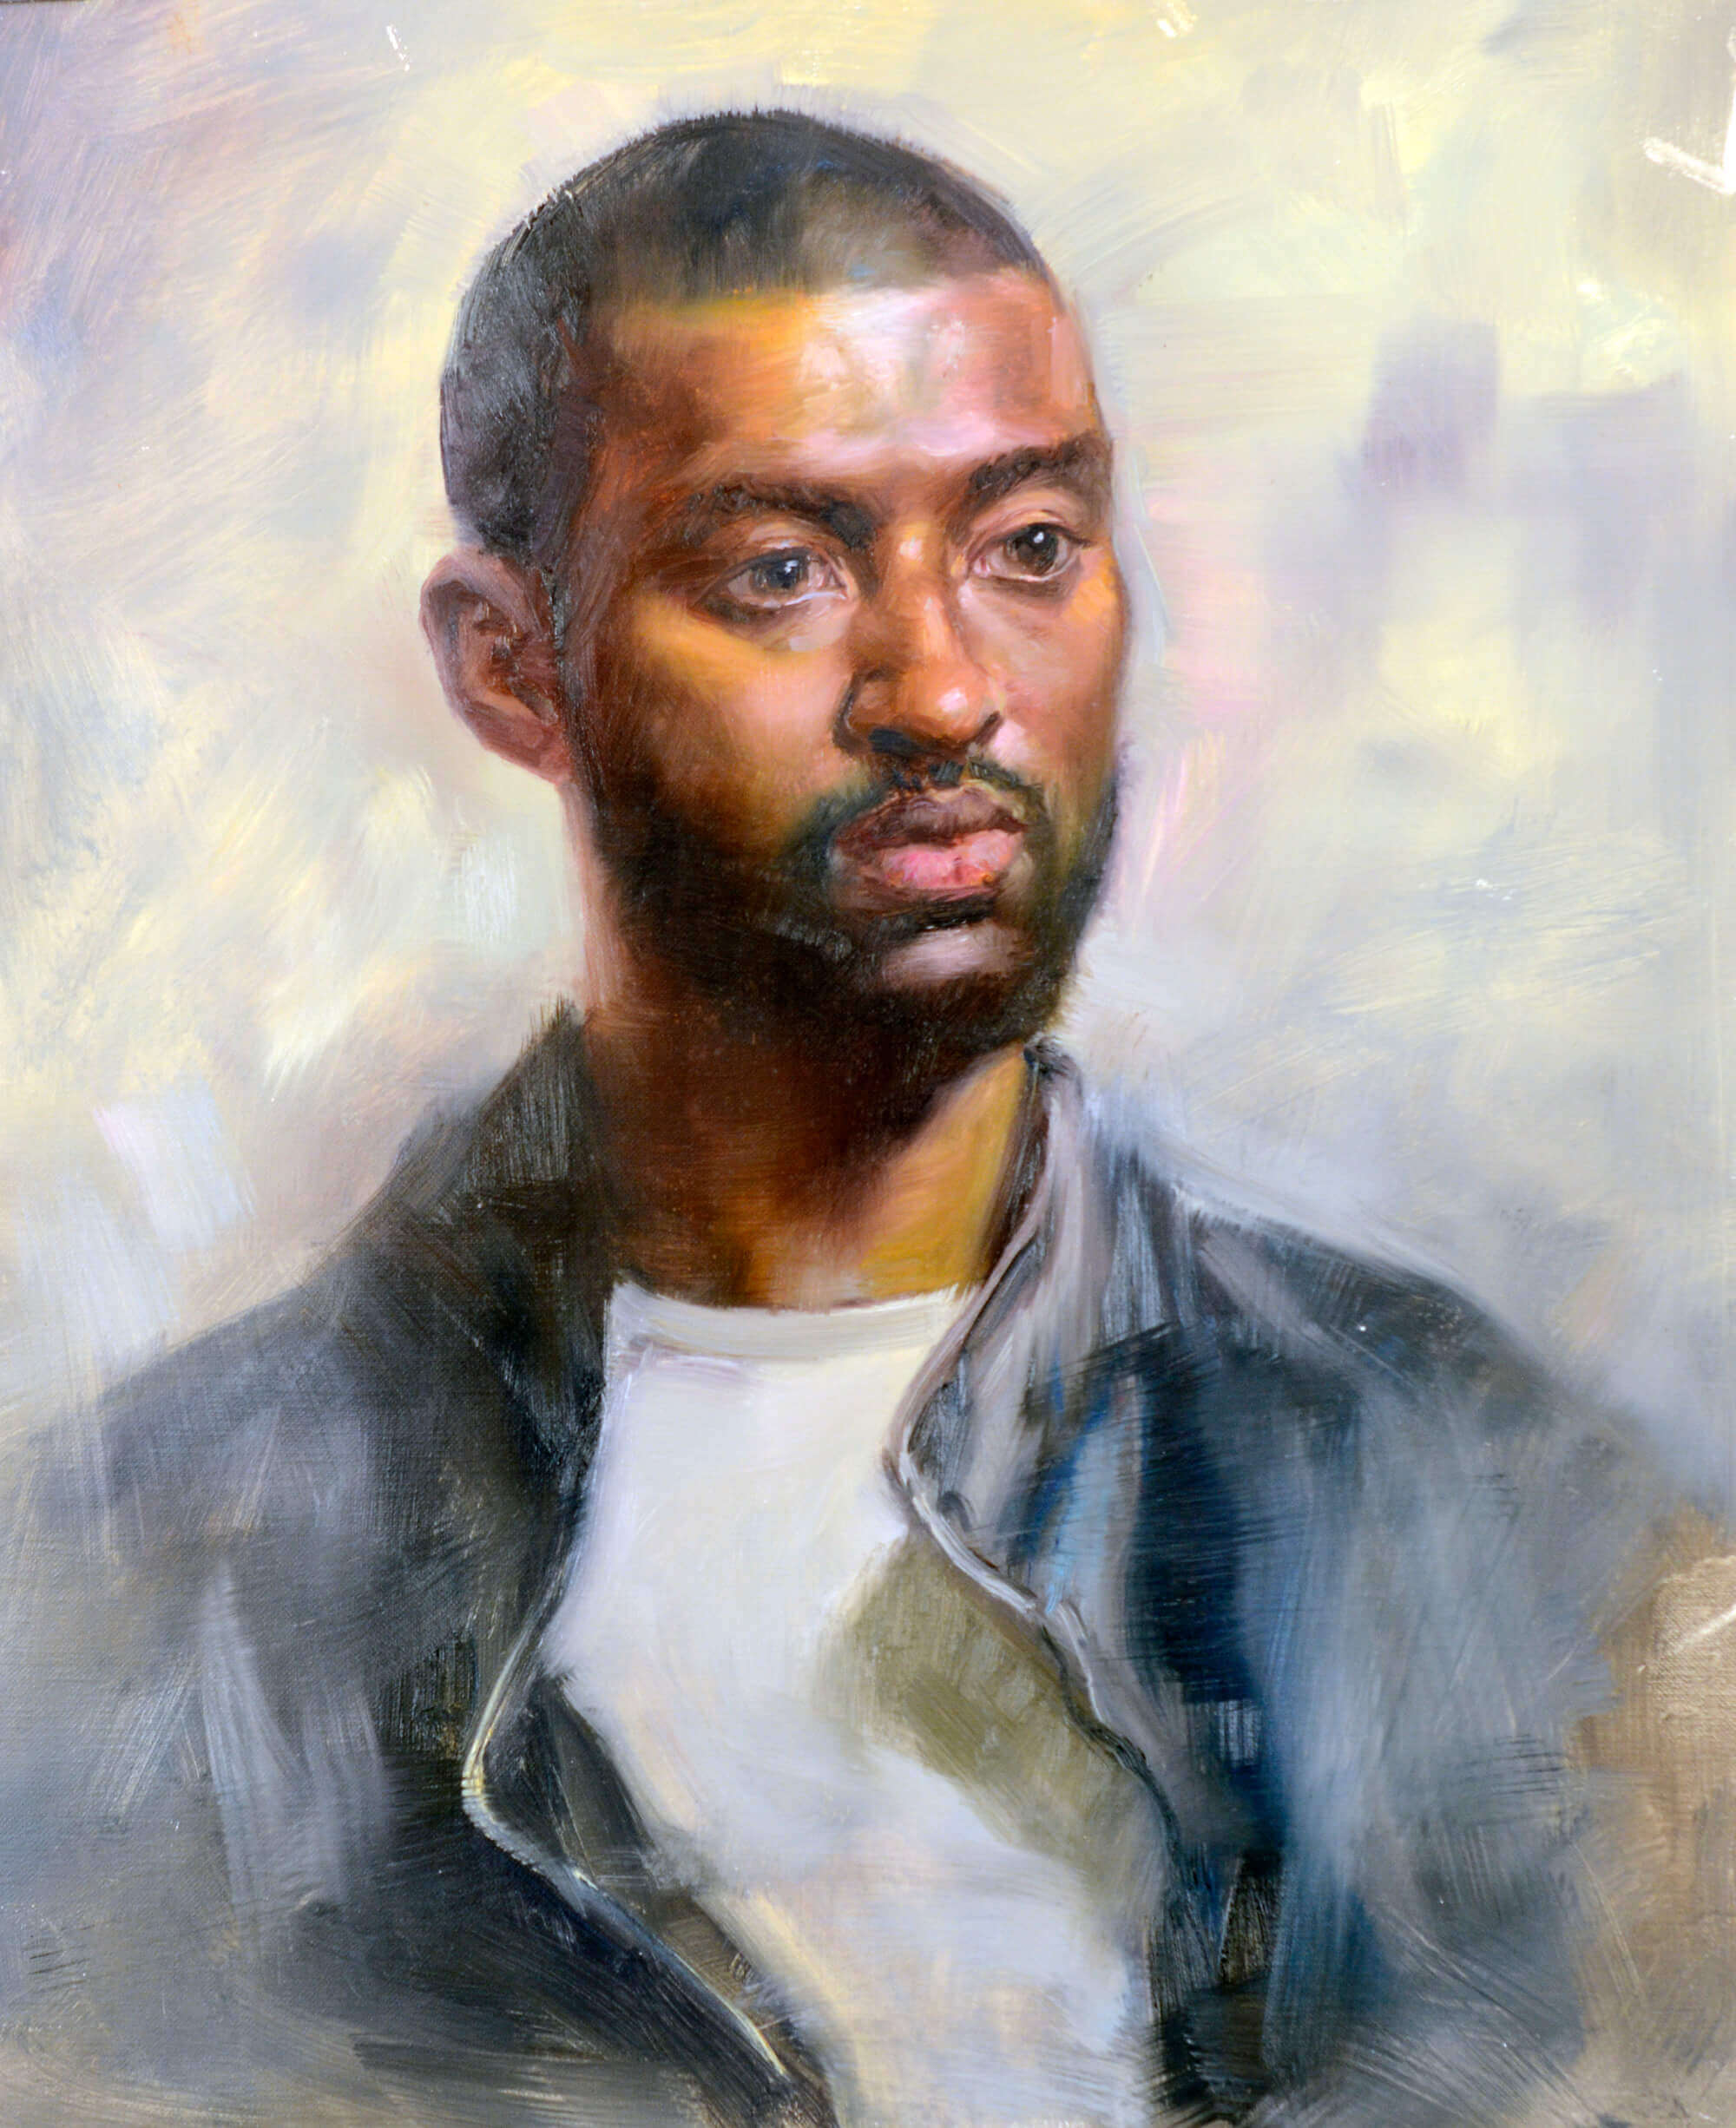 Oil portrait of a young man wearing a white t-shirt and black jacket